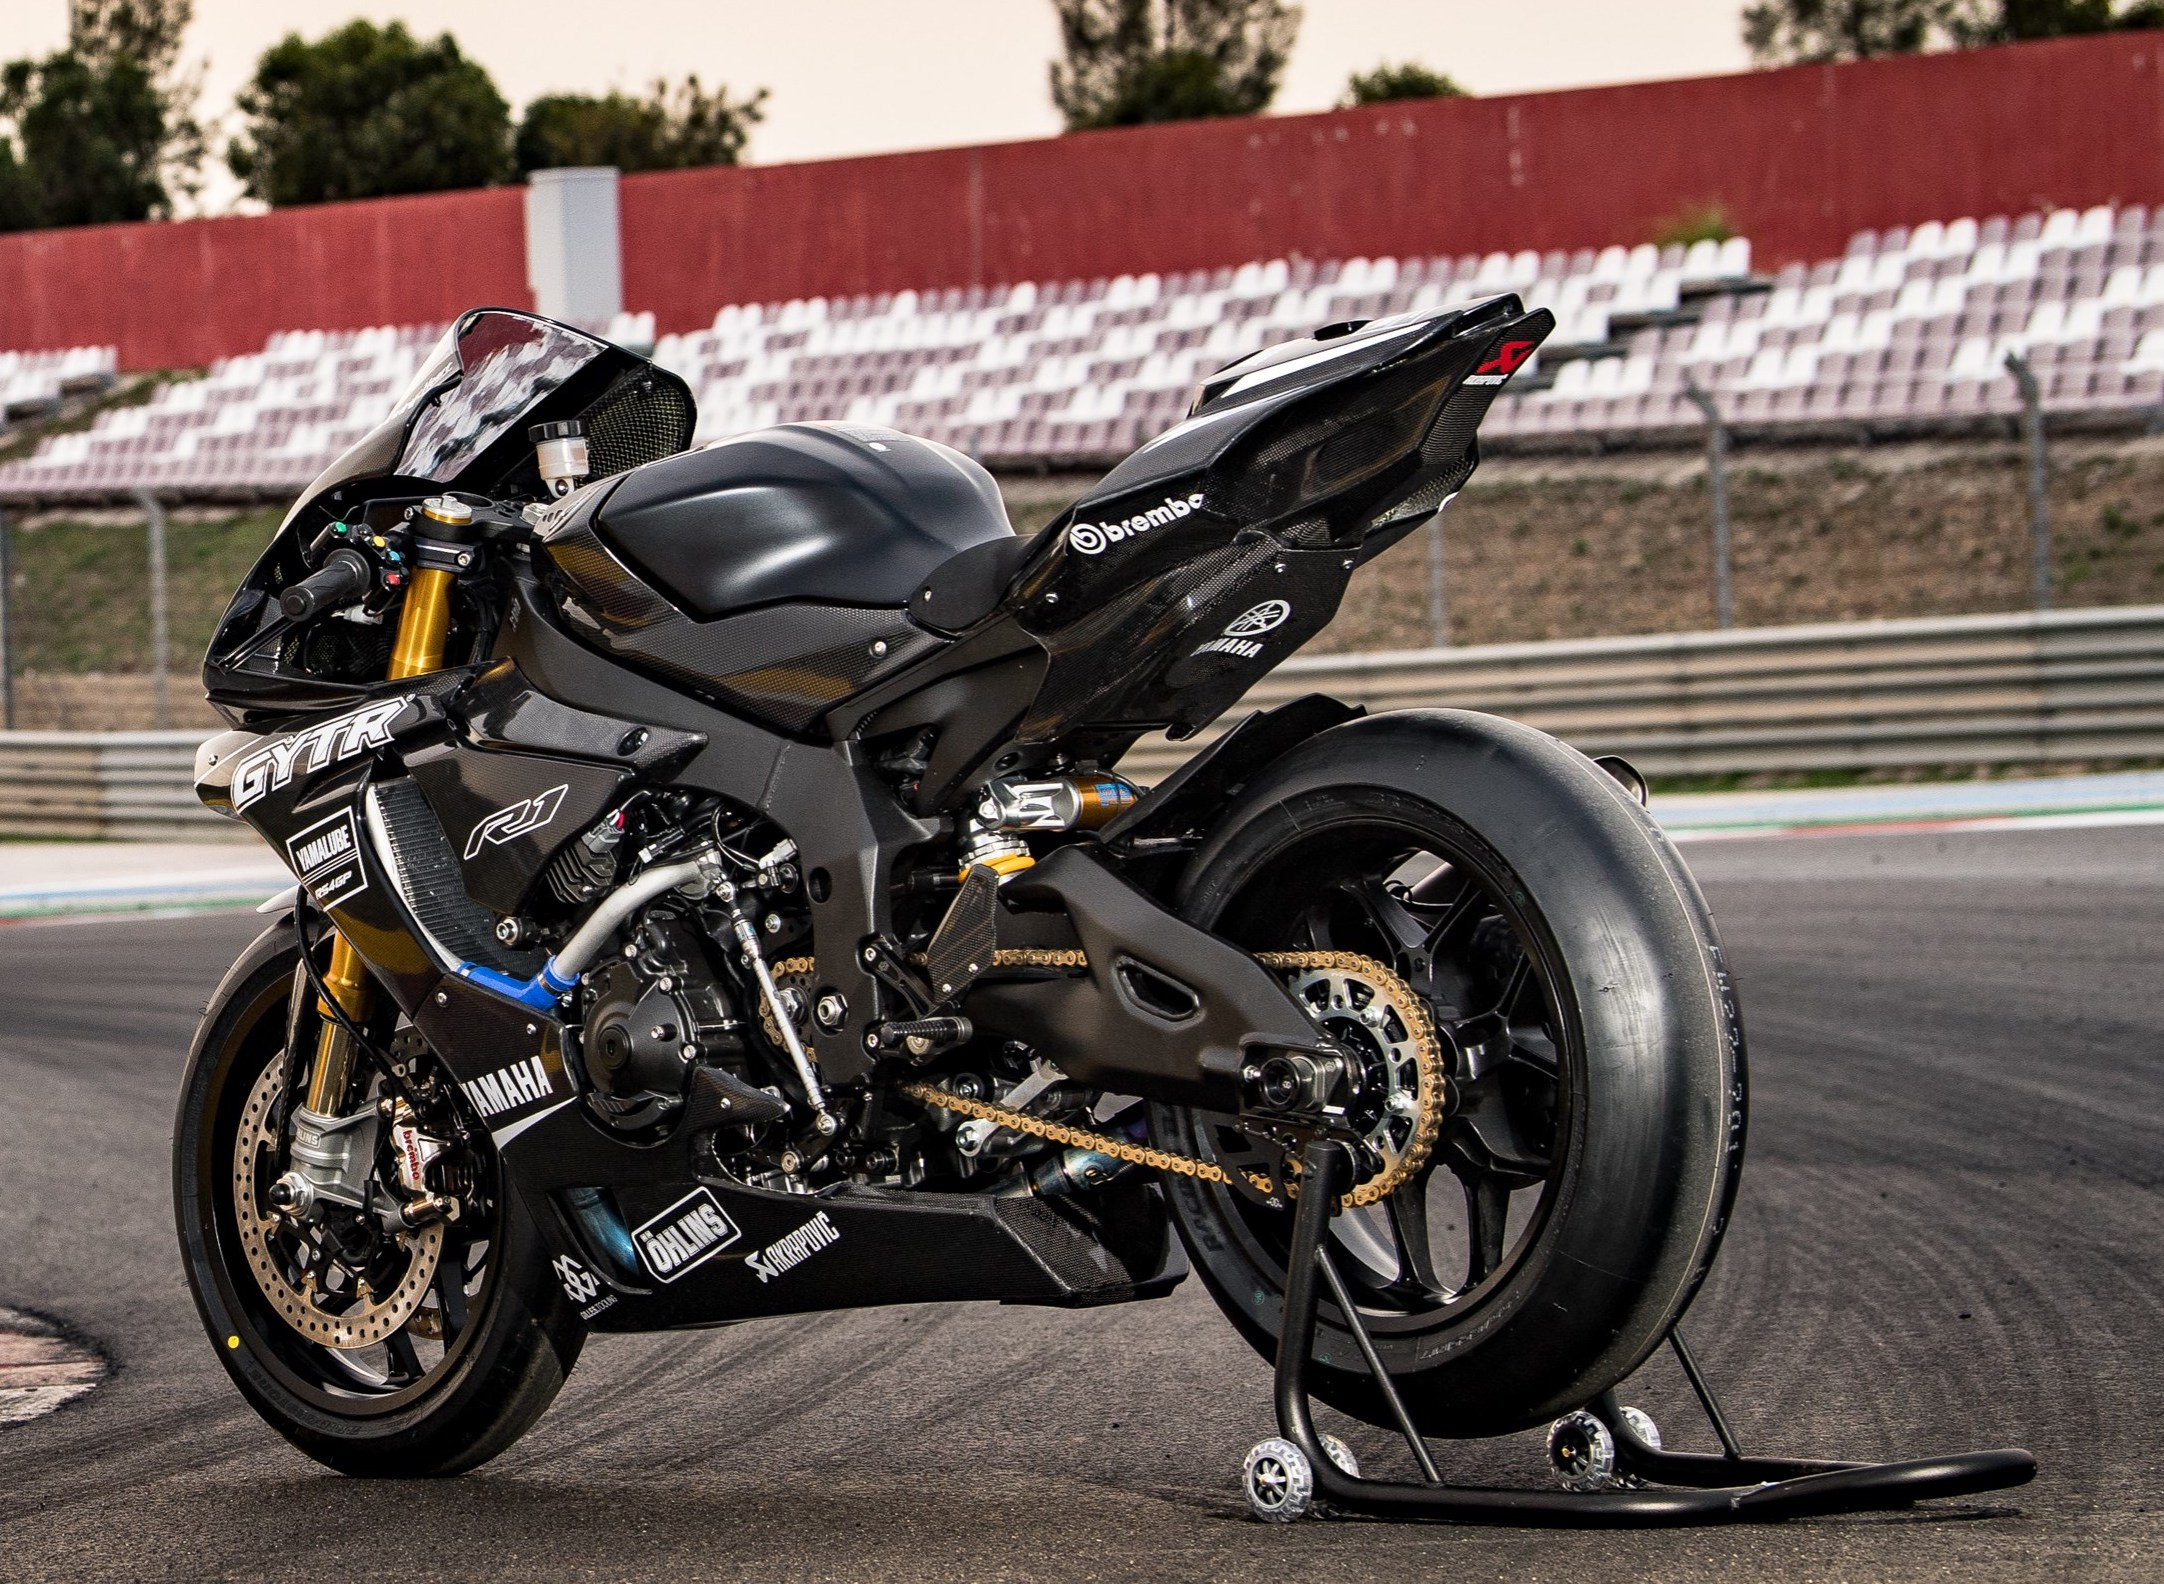 Yamaha Releases Gytr Racing Performance Parts Range For Yzf R1 And